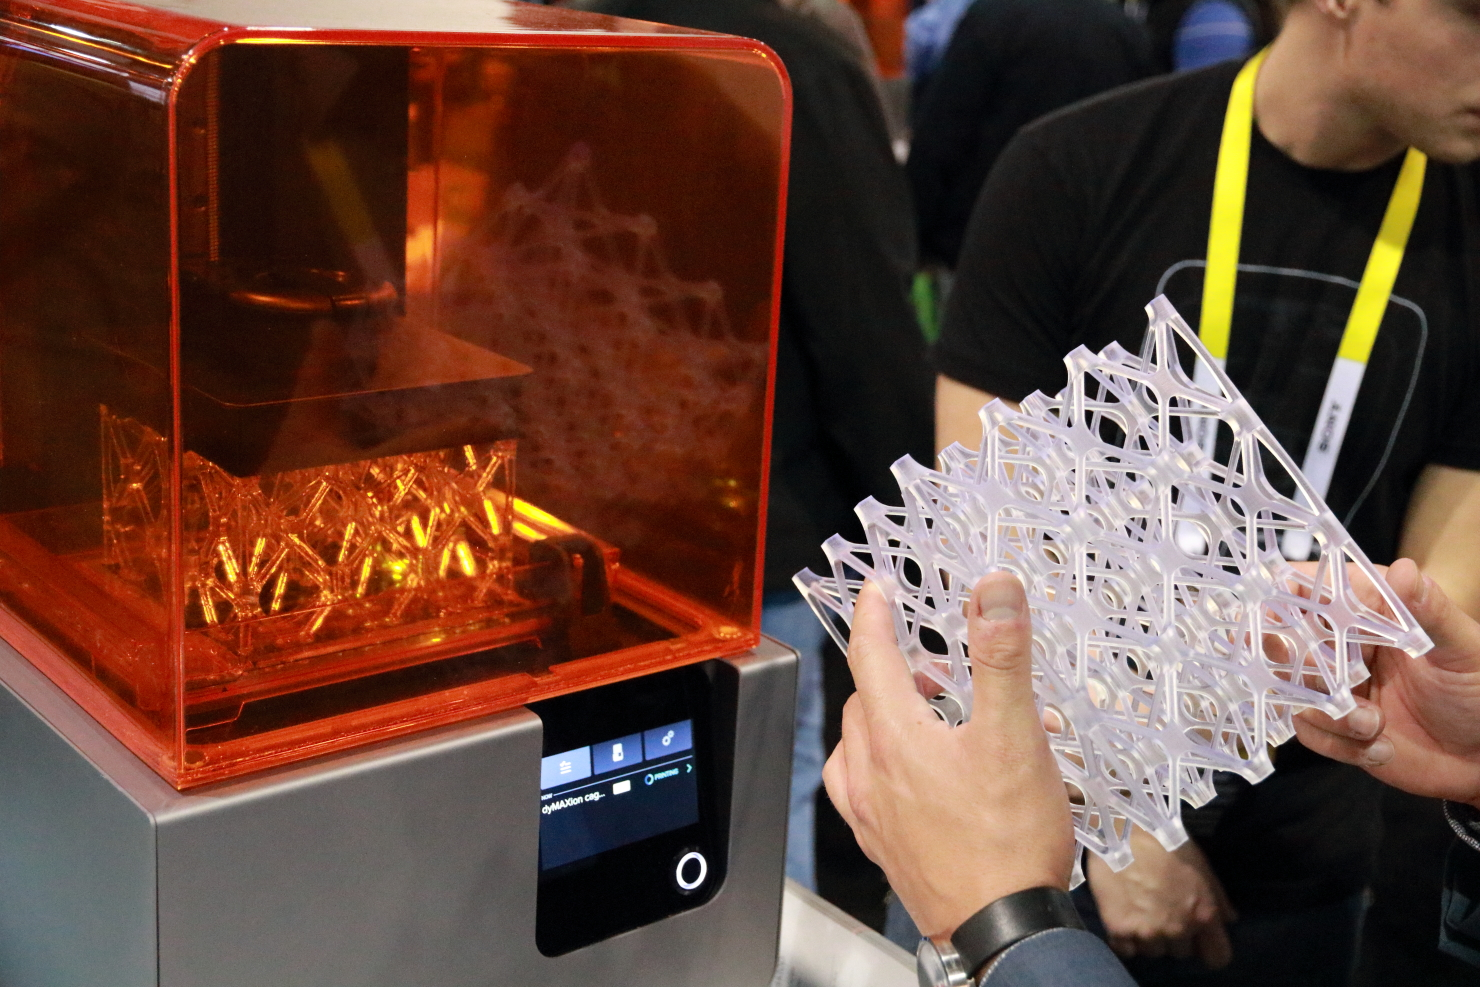 Rival 3D printing companies, such as Formlabs and its Form 2 desktop printer, were out in force at CES. (photo by João-Pierre S. Ruth)